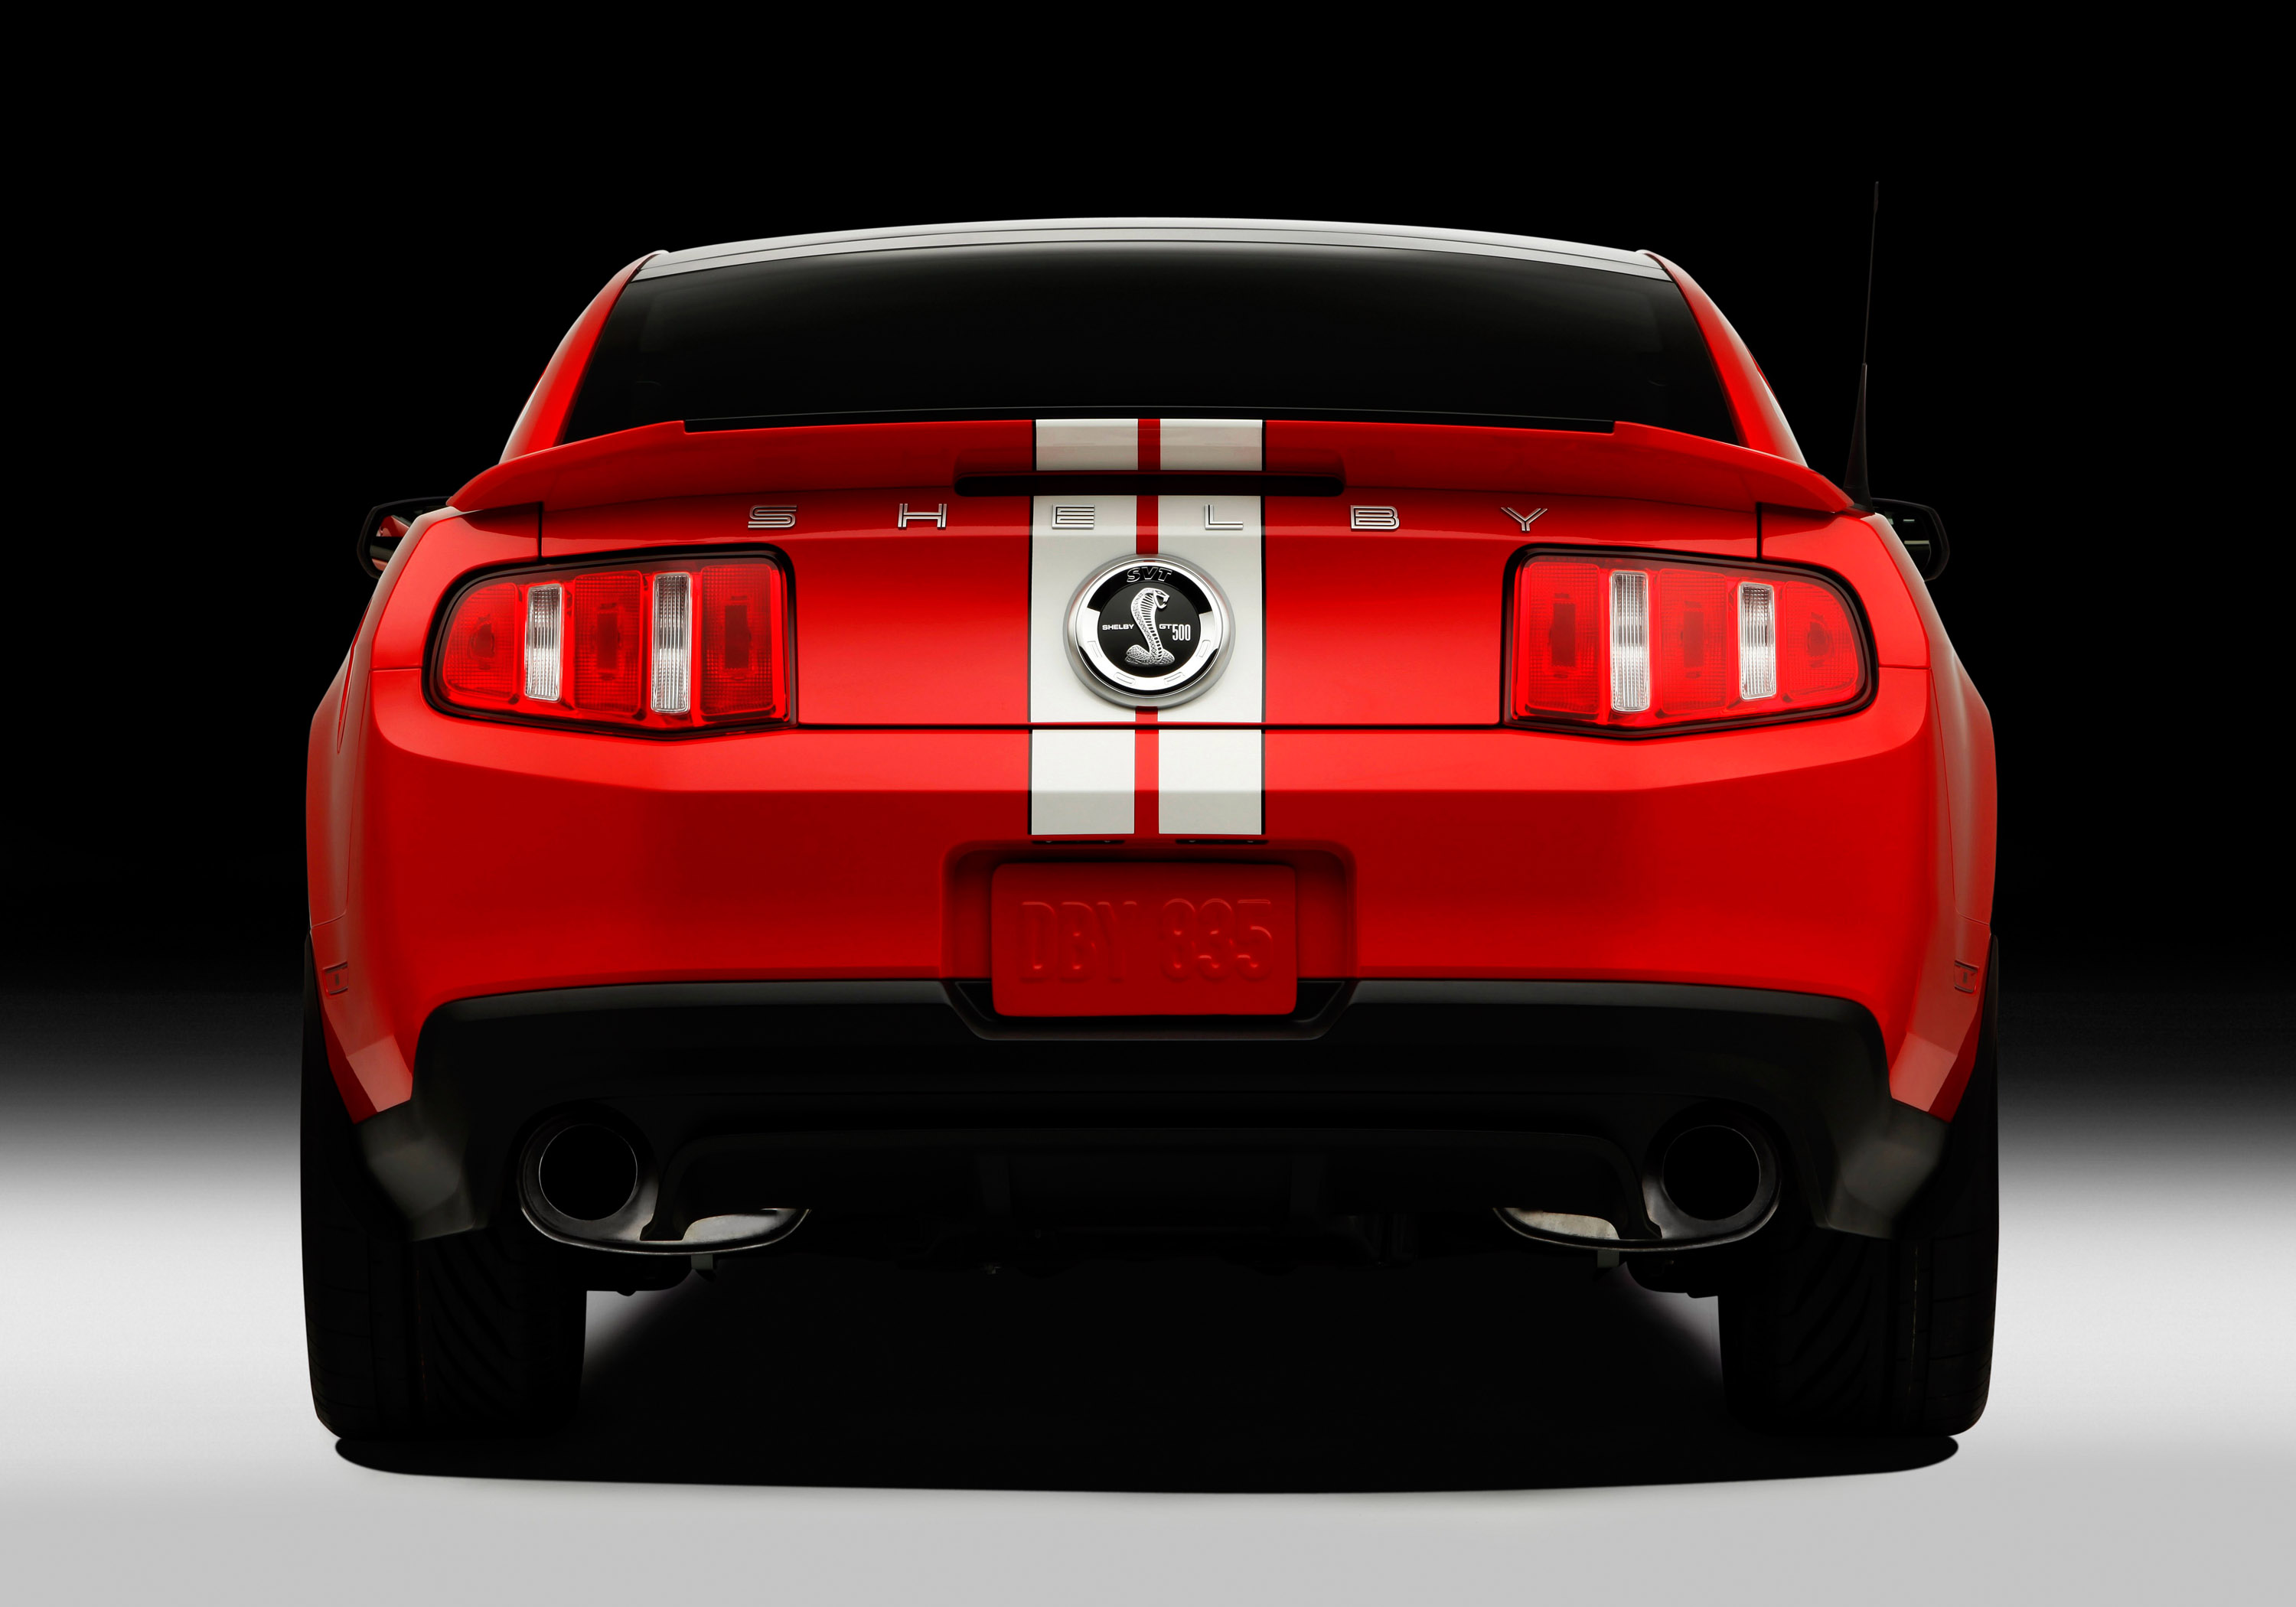 2011 Ford Shelby Gt500 Offered With Optional Svt Performance Package Wiring Diagram